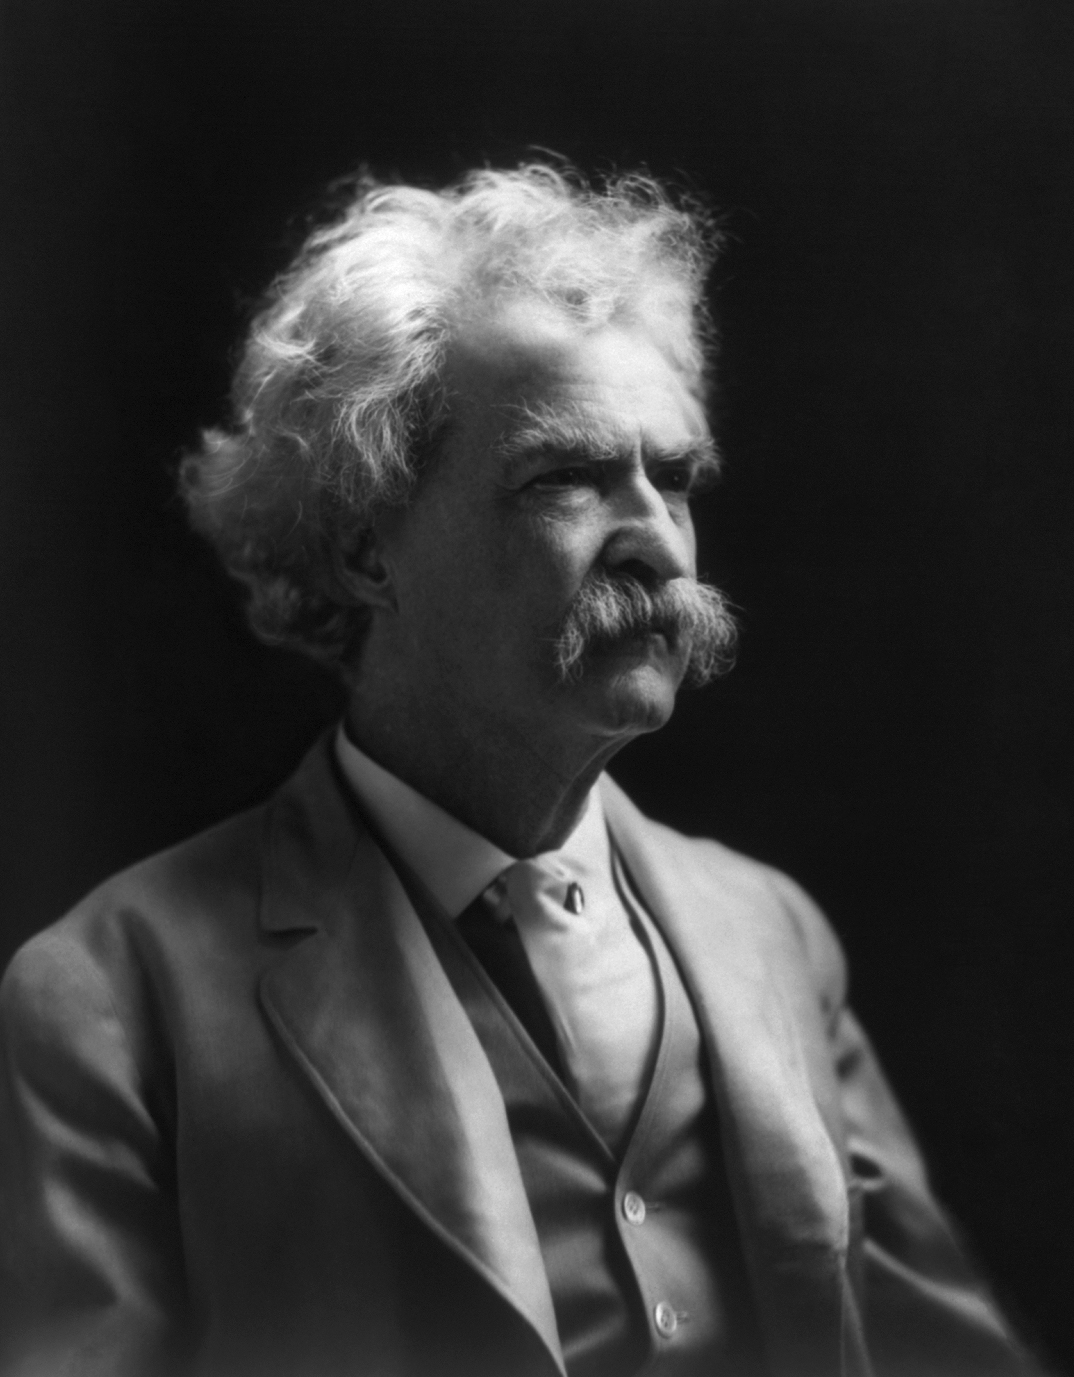 twain in his later years